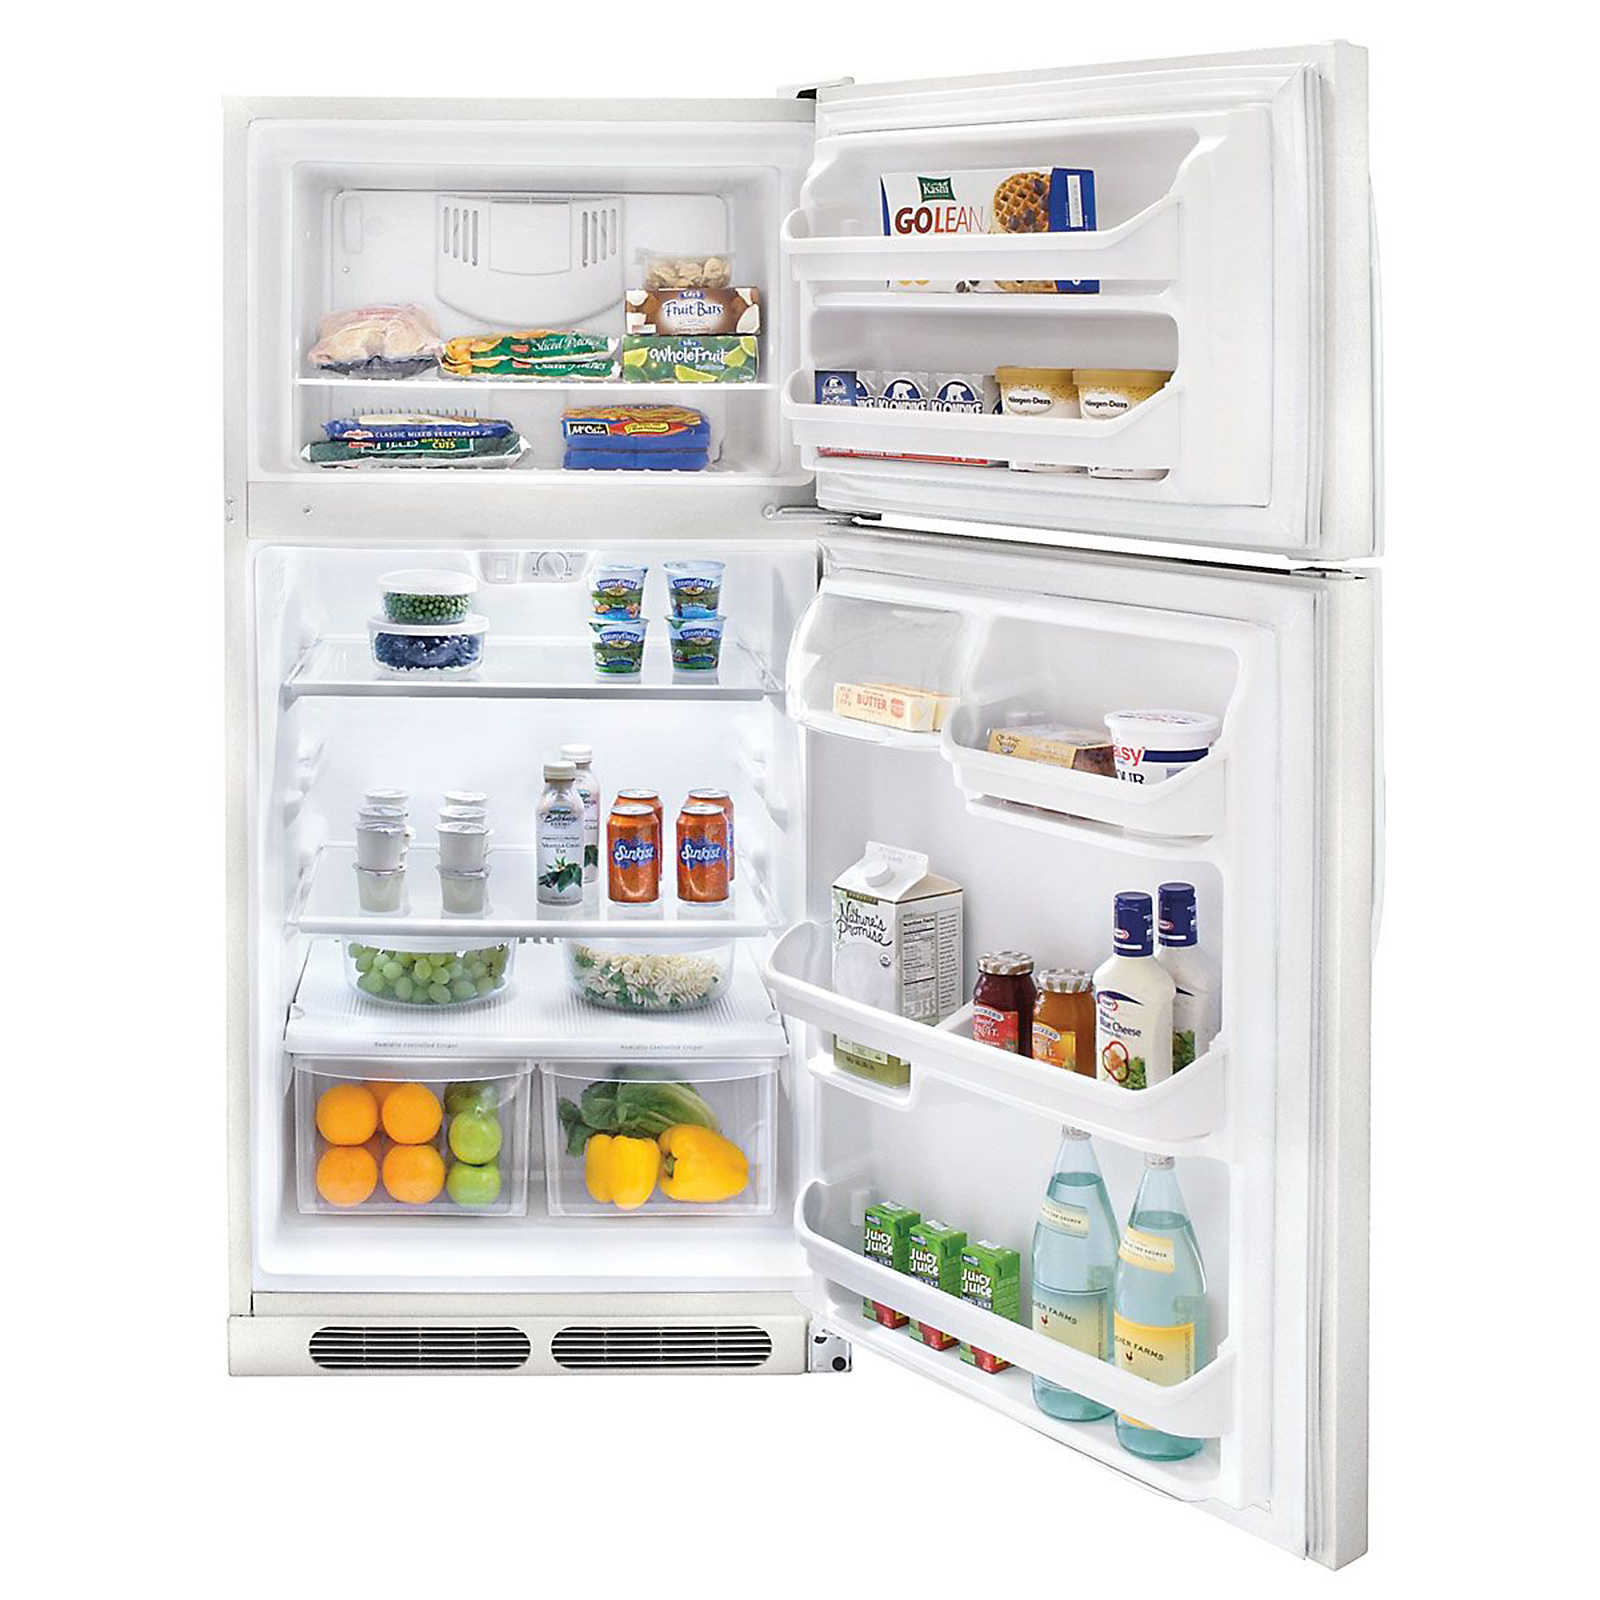 Kenmore 14.8 cu. ft. Top-Freezer Refrigerator - White